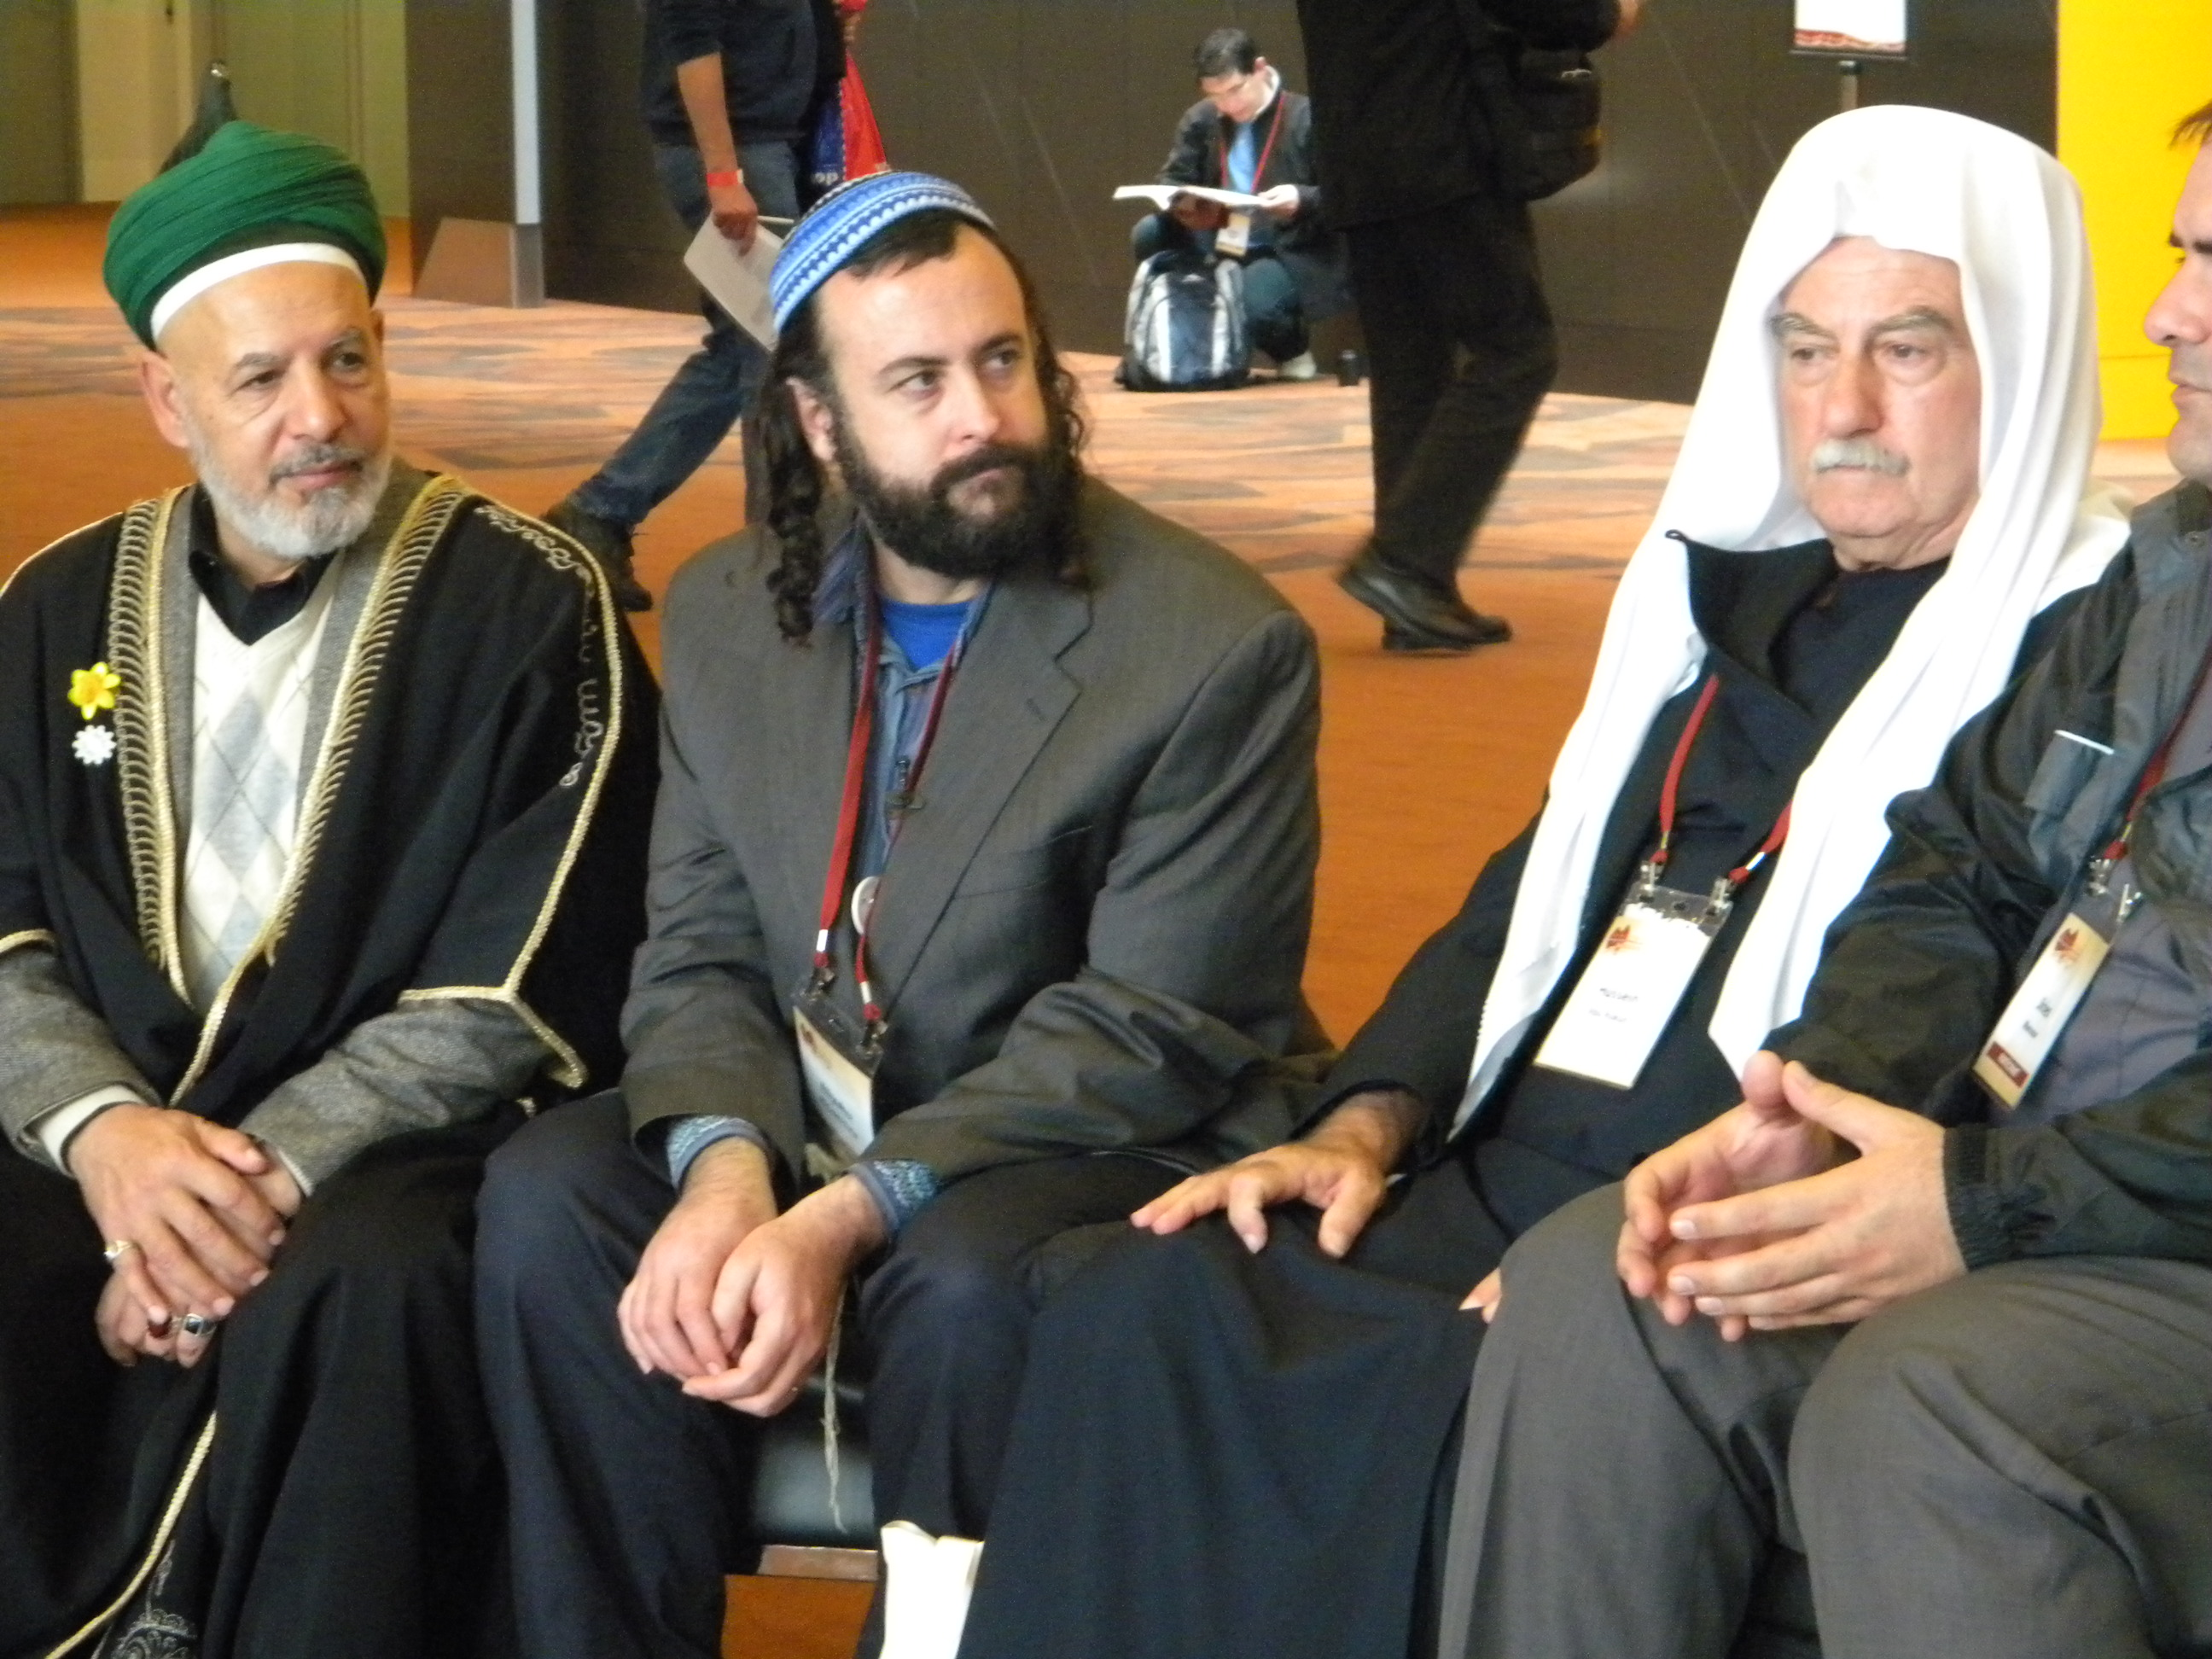 Photo taken by the author at the 2009 Parliament of the World's Religions.